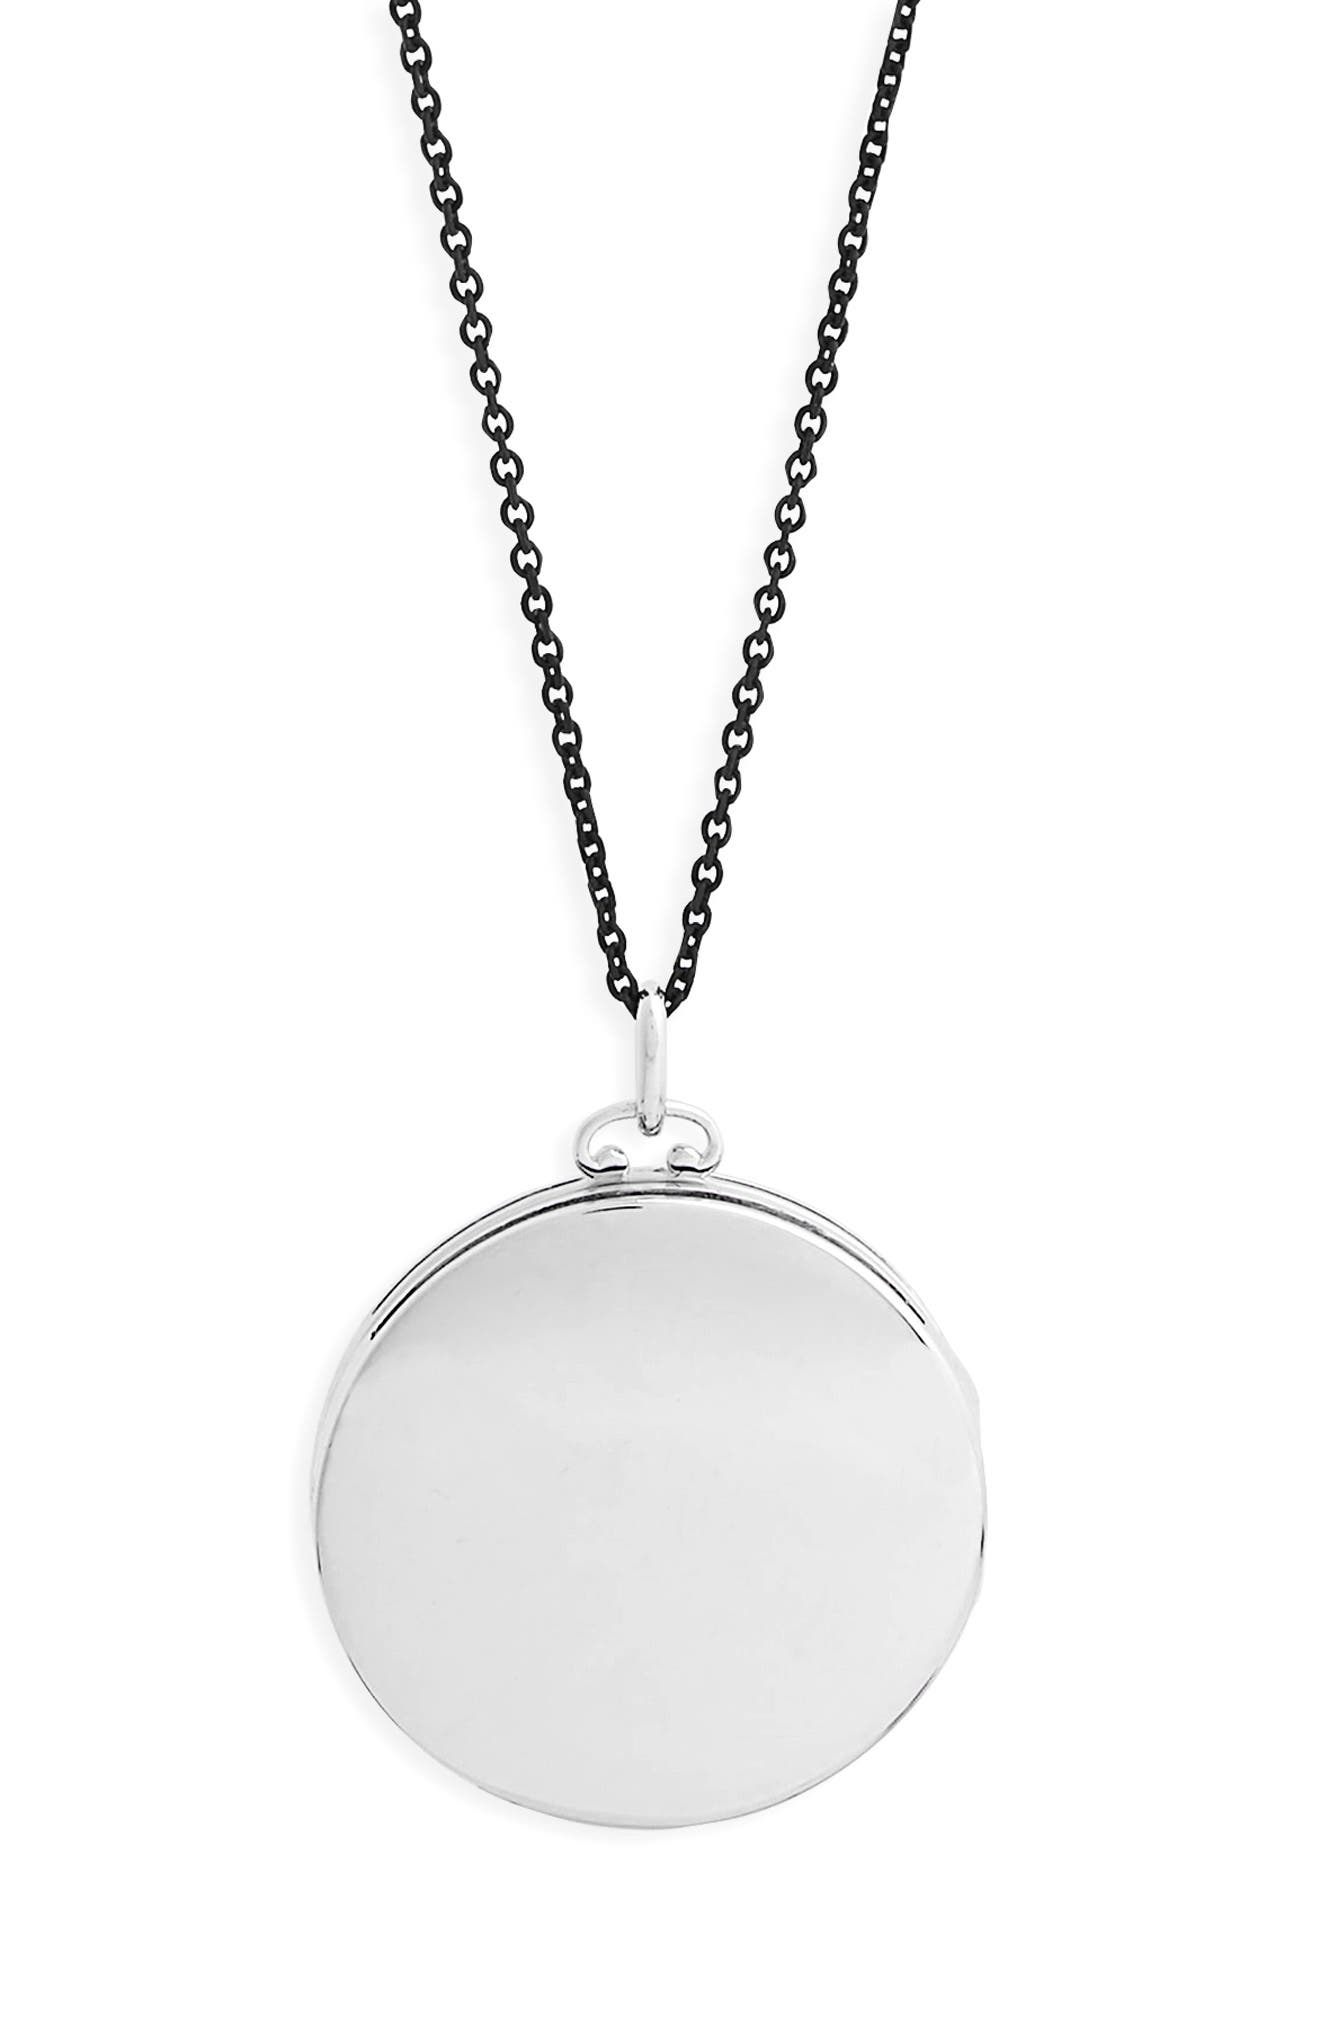 Round Dome Locket Necklace,                             Alternate thumbnail 2, color,                             Sterling Silver/ Black Steel